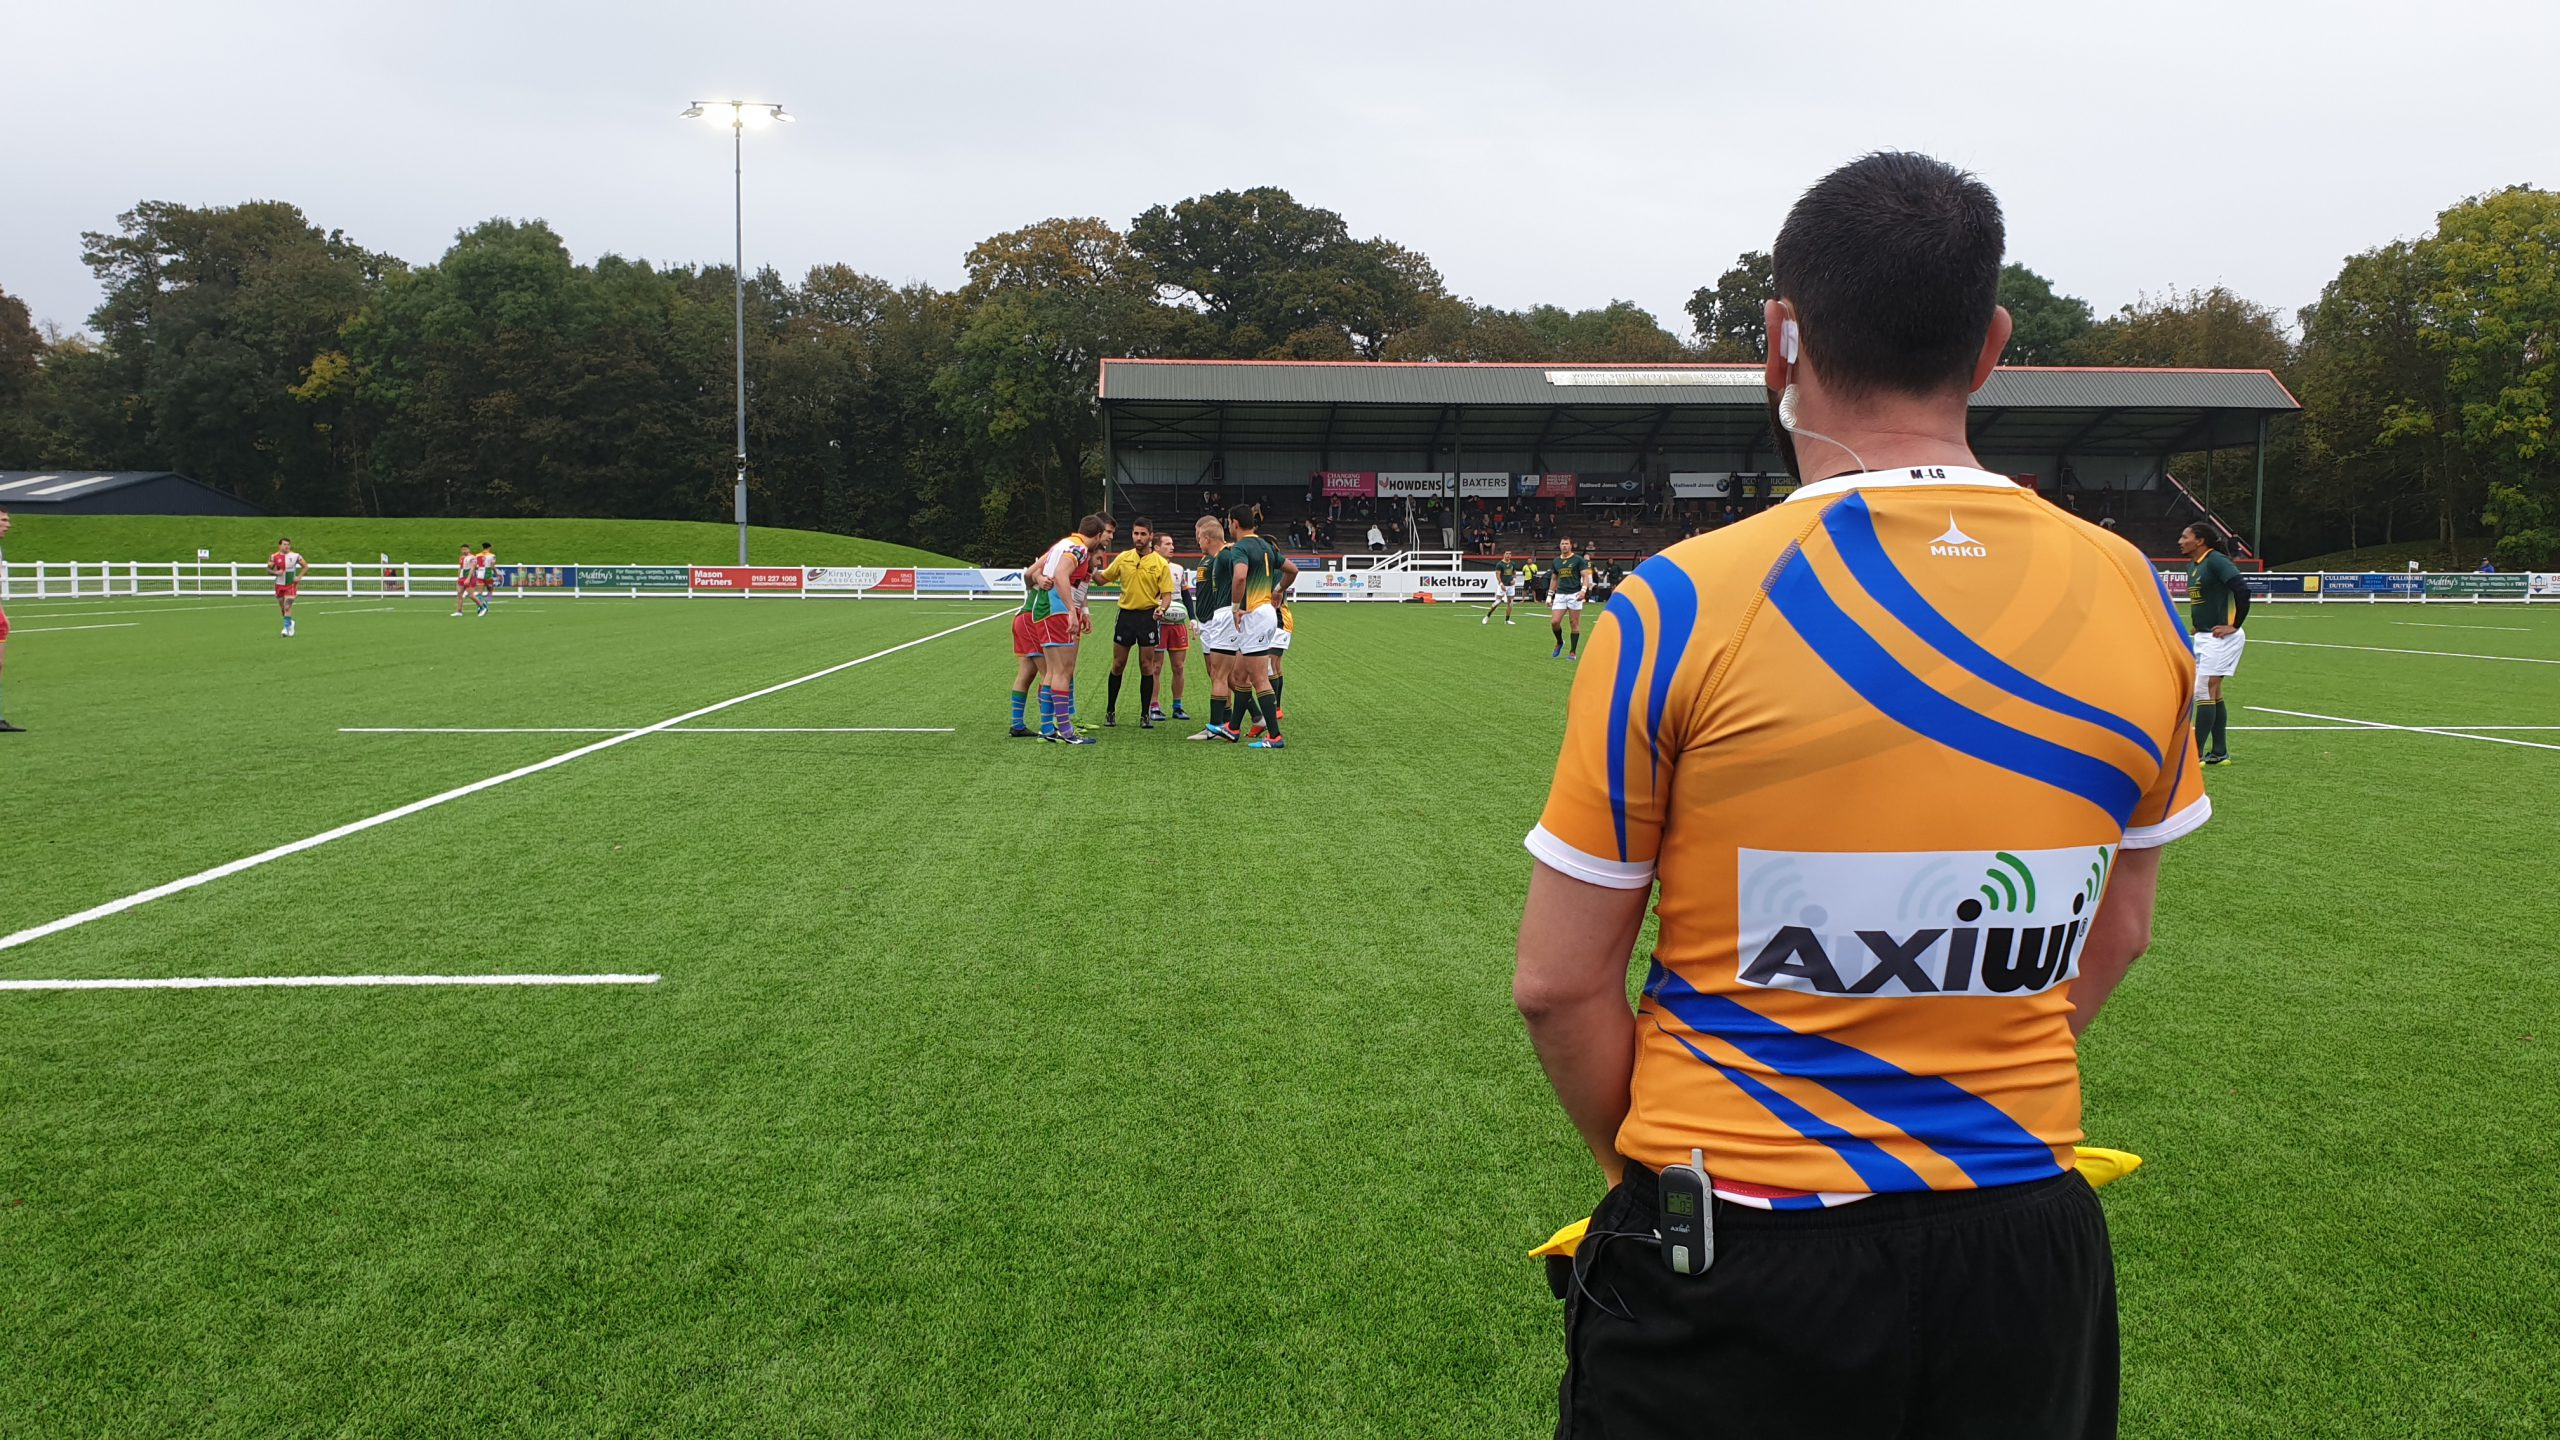 axiwi-7s-referees-rugby-international-sevens